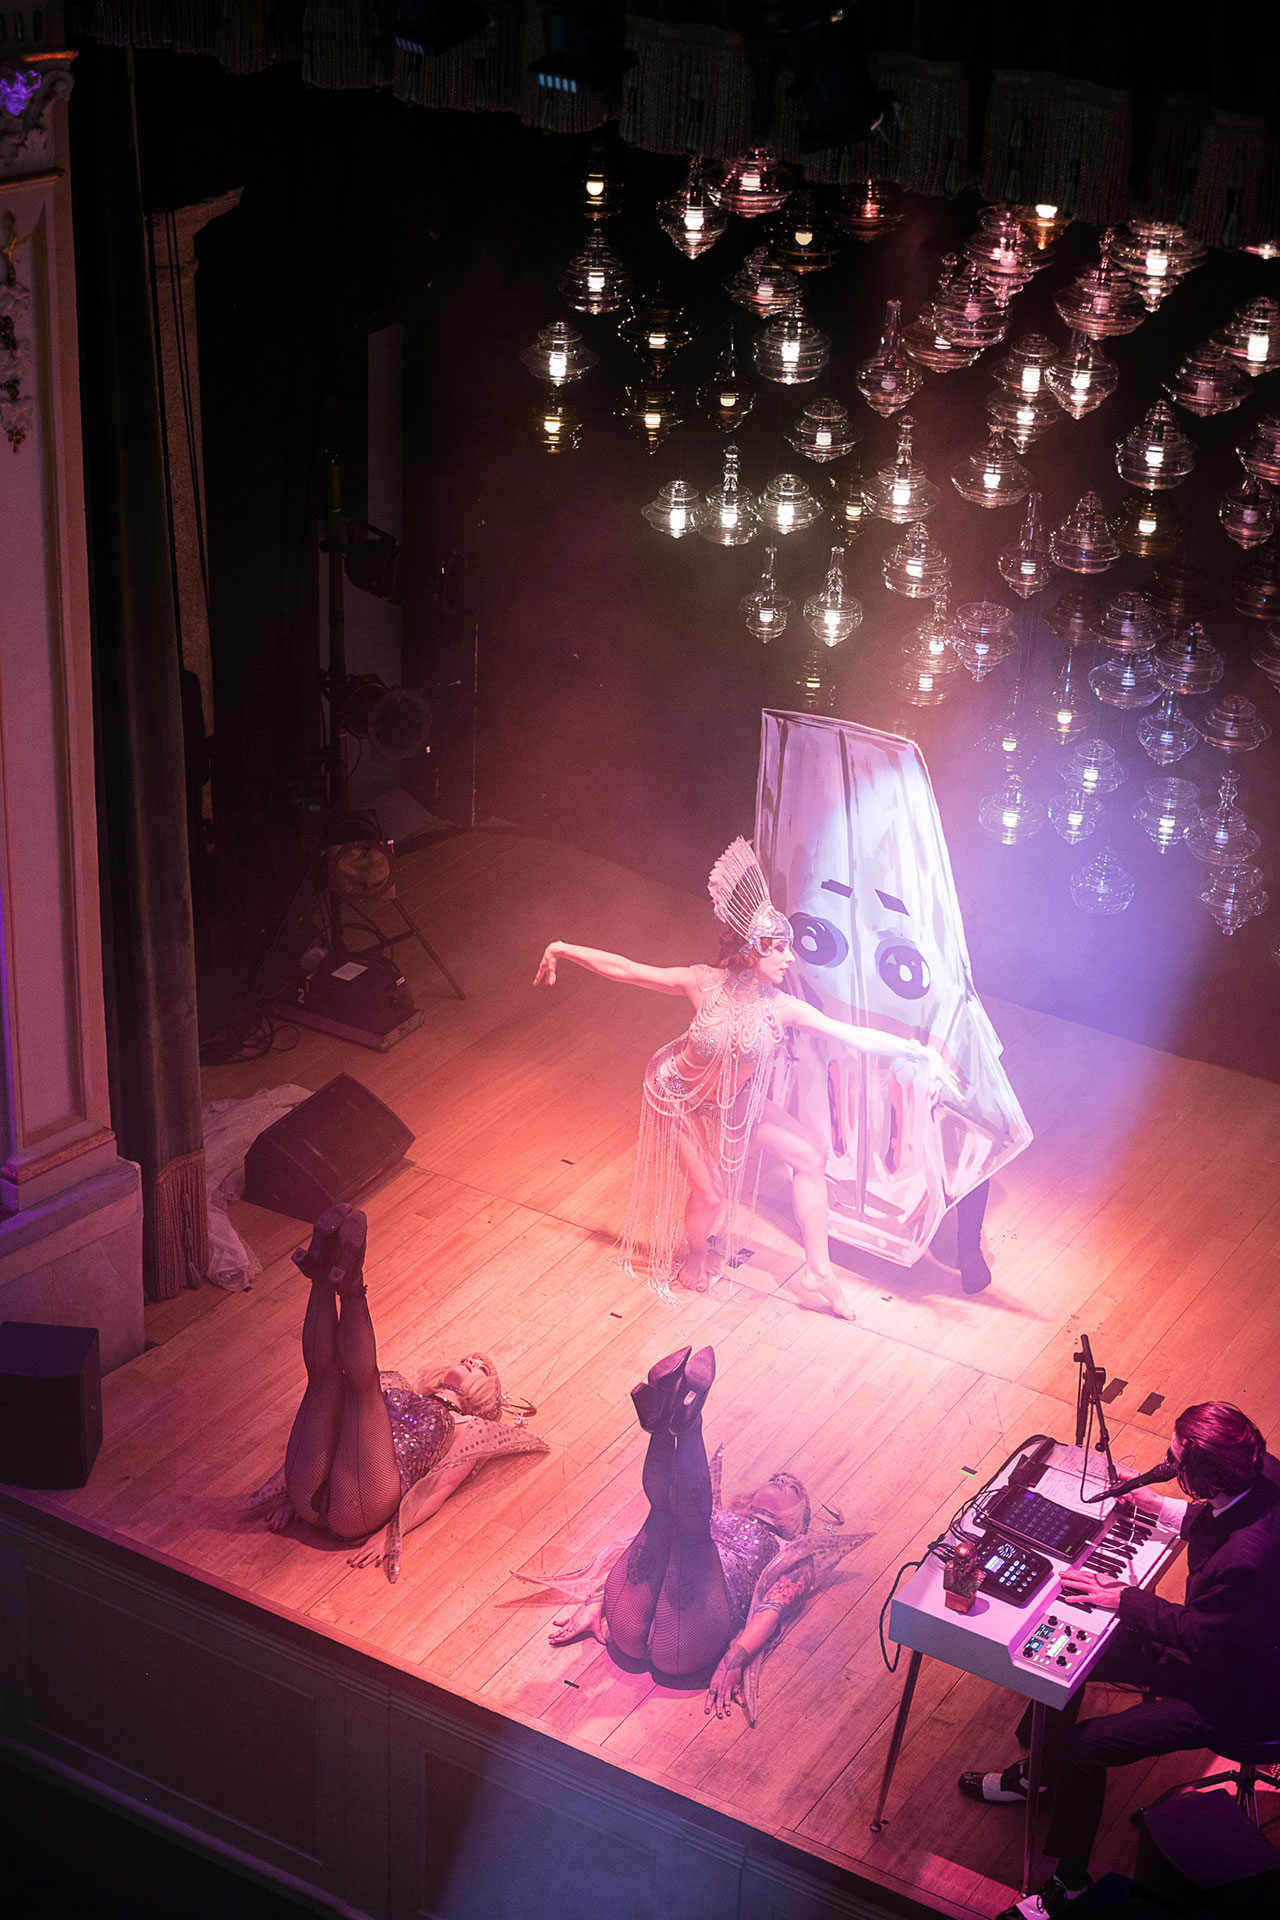 Lasvit Monster Cabaret view at Teatro Gerolamo. On the background Neverending Glory chandelier collection. Photo courtesy Lasvit.